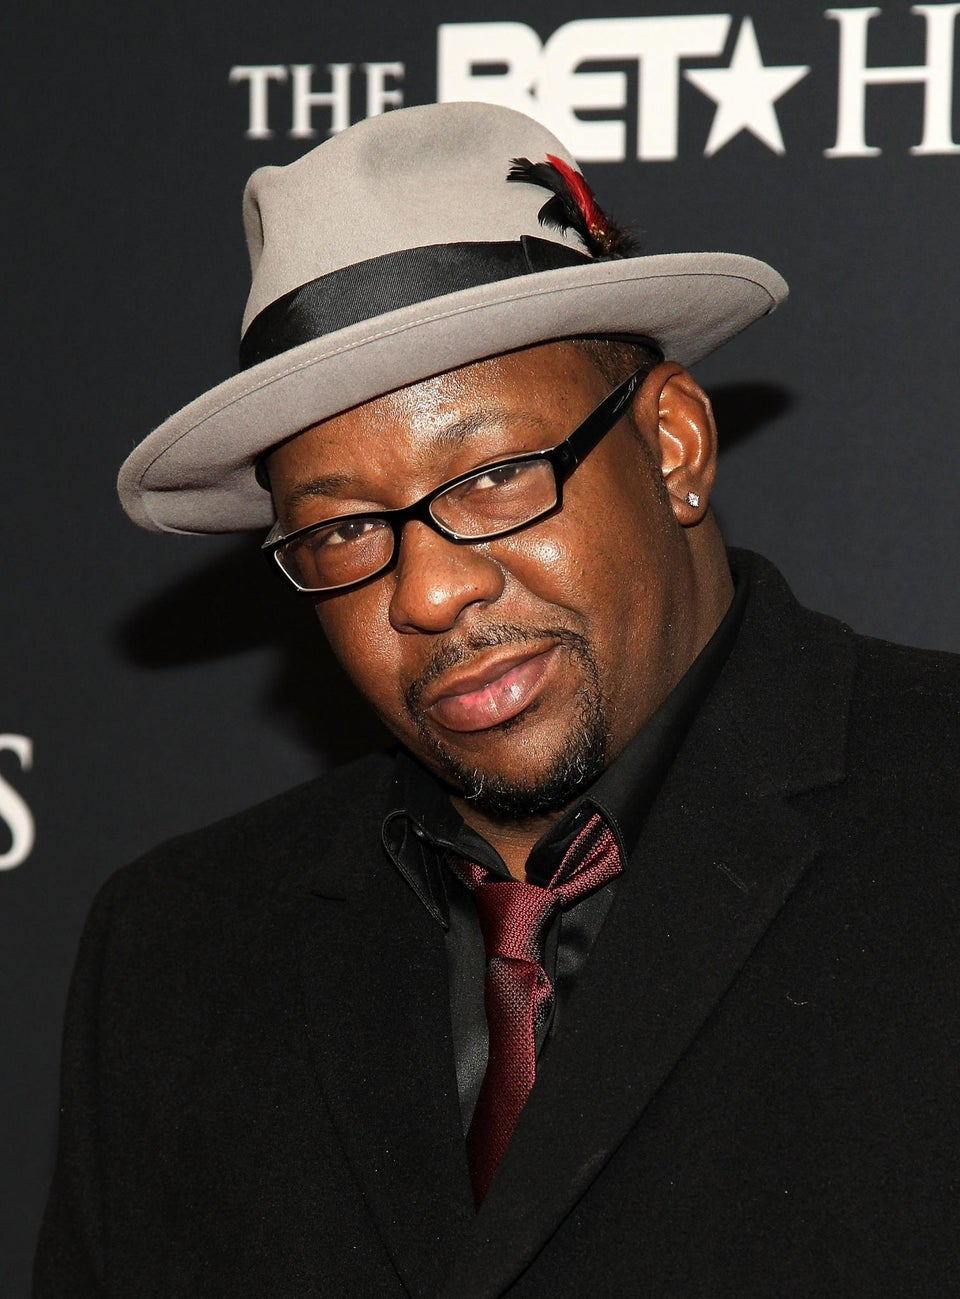 Bobby Brown Gives Emotional Thanks To Fans During Performance, Brings Crowd to Tears